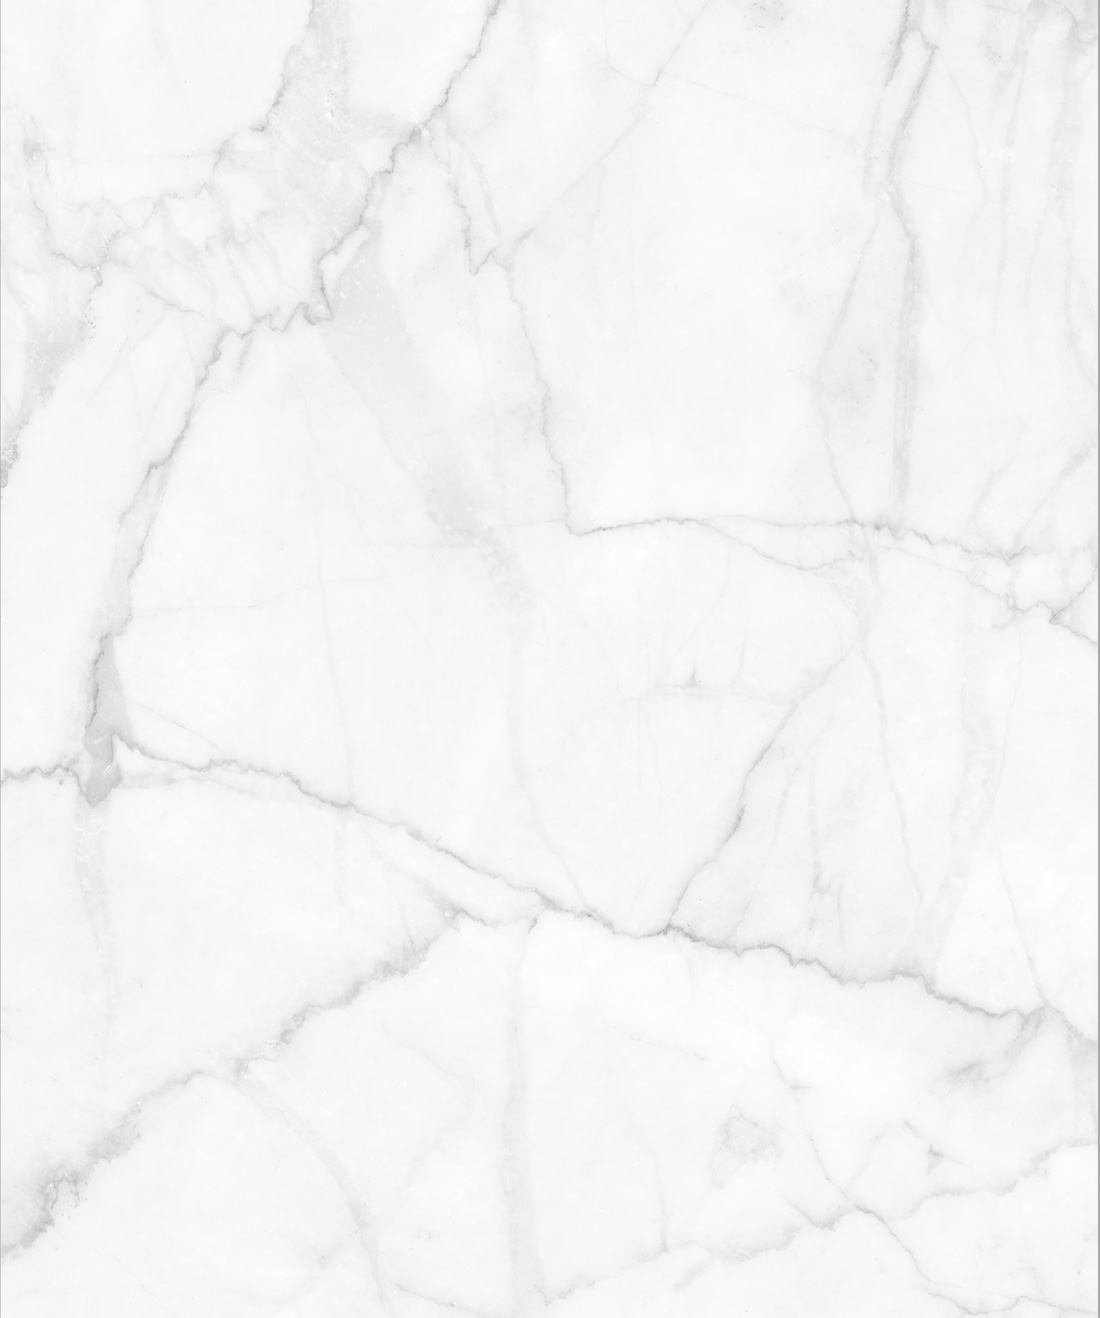 Marble Wallpaper Luxury Realistic White Marble Milton King